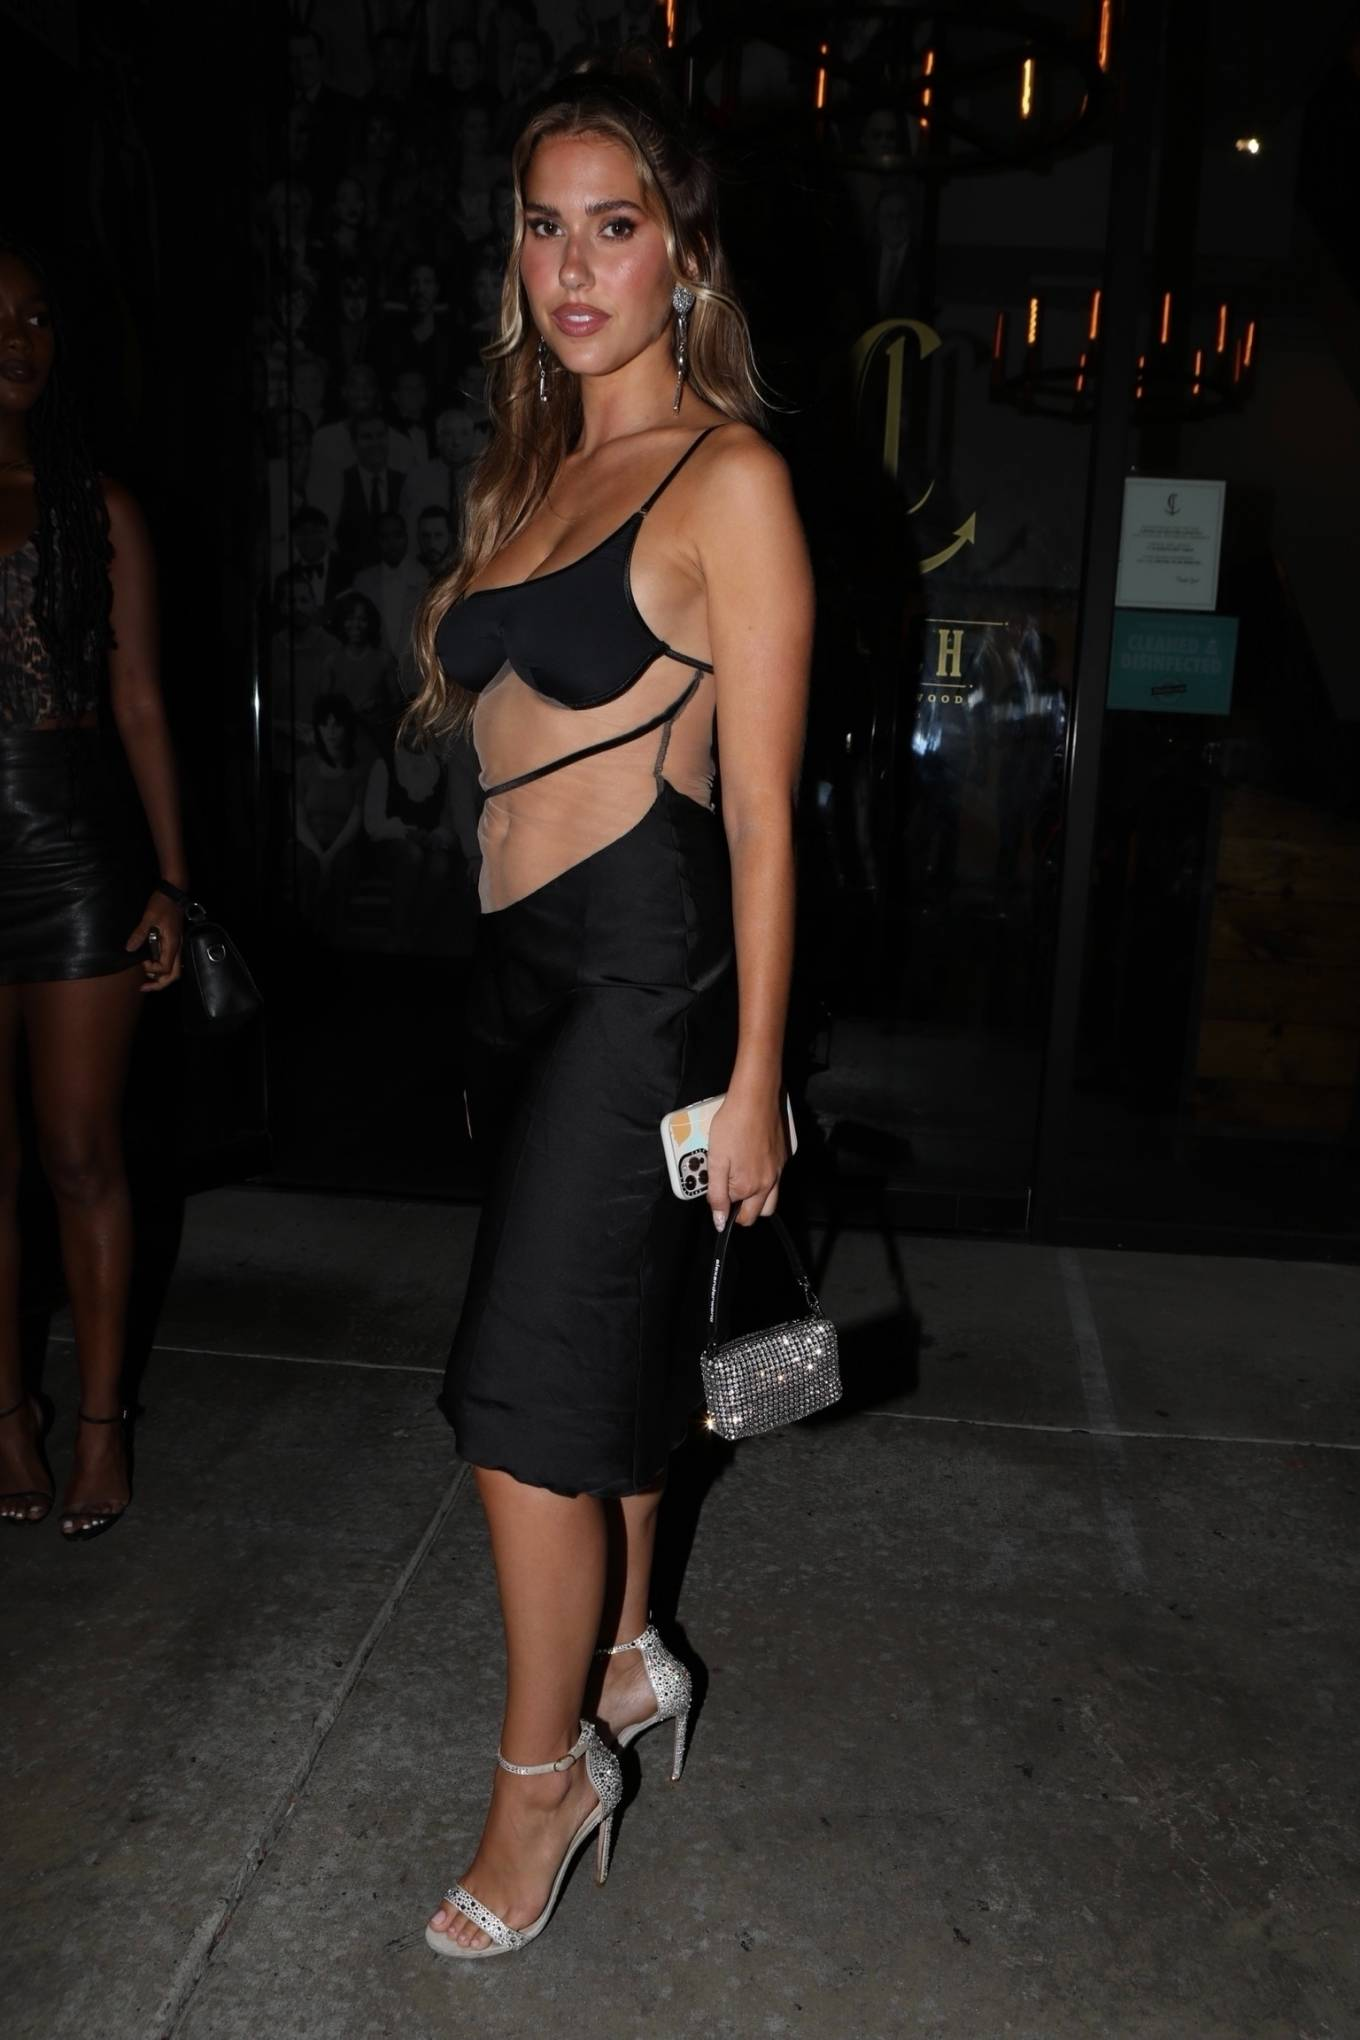 Kara Del Toro - Spotted in a black dress as she leaves Catch in West Hollywood